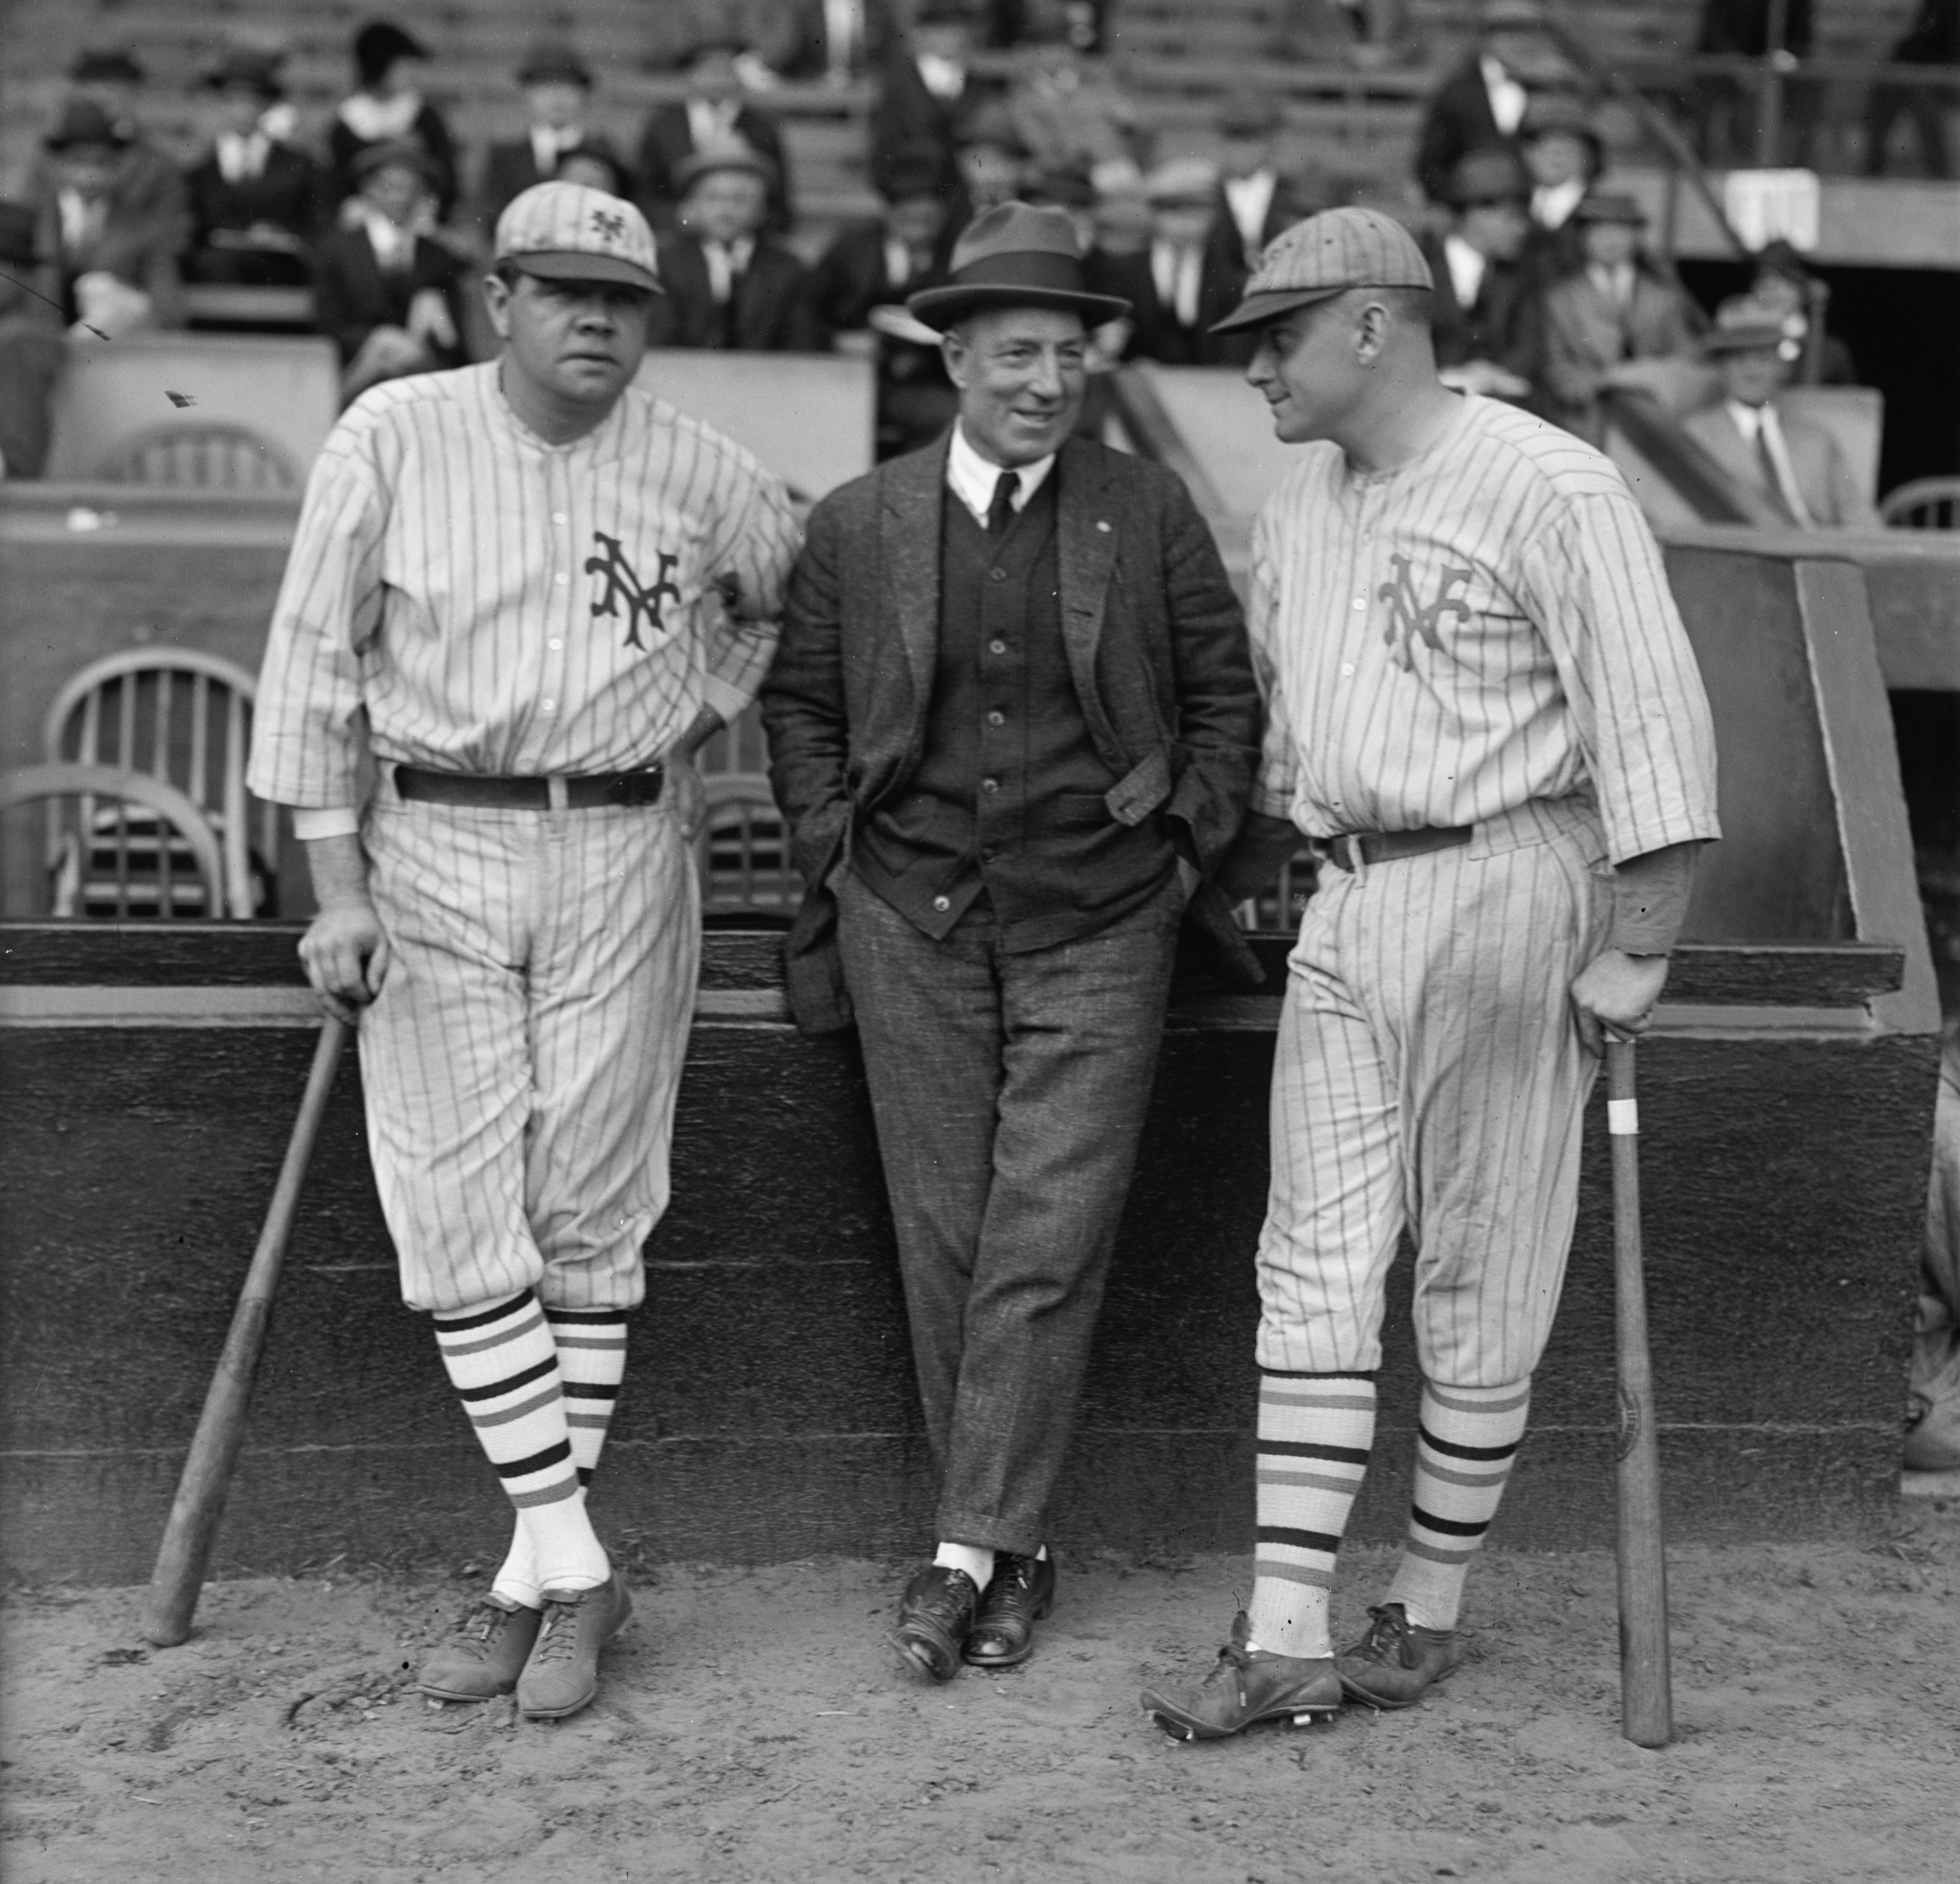 Babe Ruth in a borrowed New York Giants uniform, with his former owner Jack Dunn (and Giants player Jack Bentley), before the October 3, 1923, exhibition game between the Giants and the Dunn's International League Orioles. Ruth, who was a star with the Yankees by then, was enticed to play to be a gate draw. The game's proceeds went to fundraising for former Giants owner John B. Day and former manager Jim Mutrie. (LIBRARY OF CONGRESS)